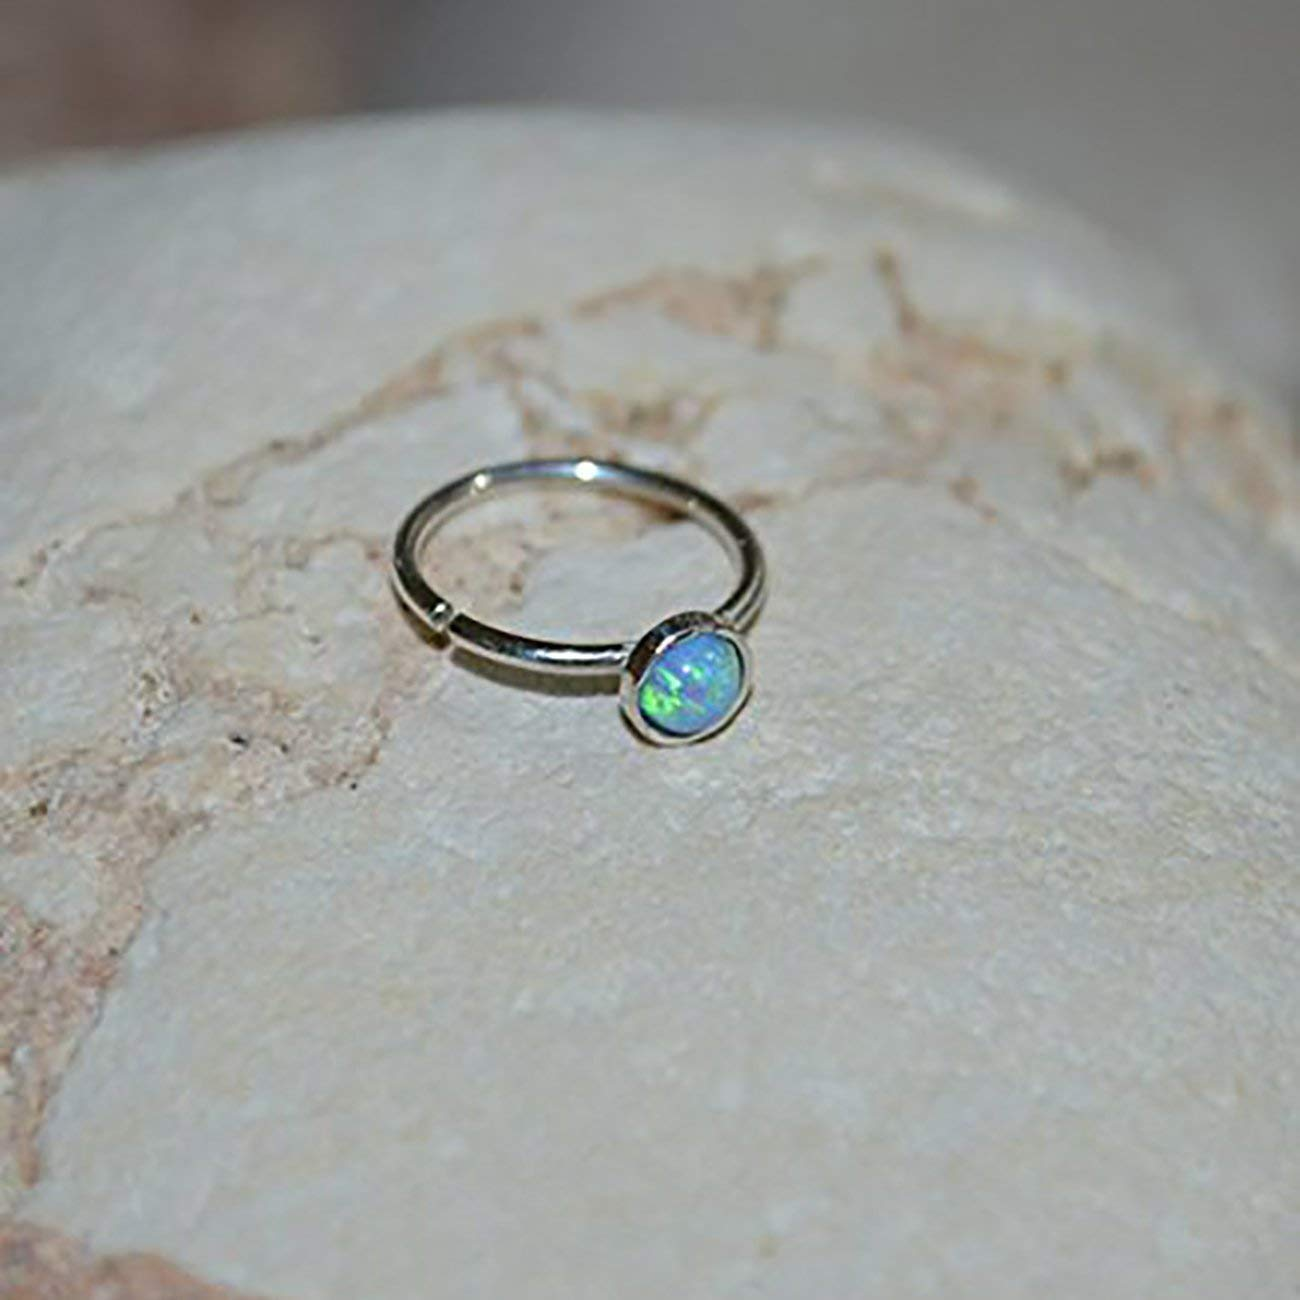 3mm Blue Opal NOSE RING // Silver Nose Hoop - Conch Piercing - Cartilage Earring - Tragus Ring - Cartilage Hoop - Helix Jewelry 20g